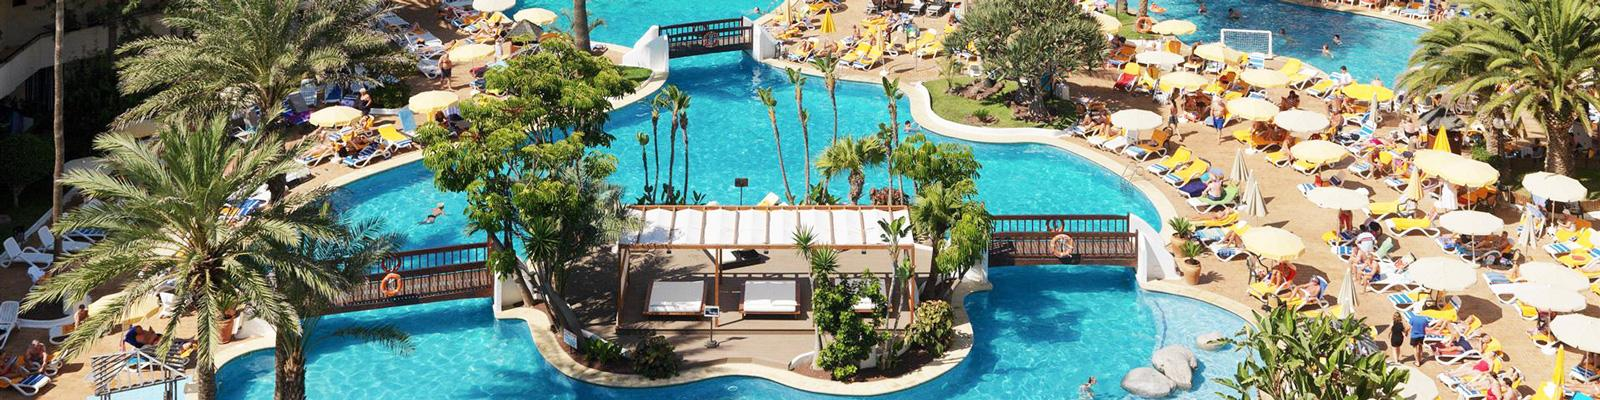 April & May 2017 Holiday Deal in Tenerife